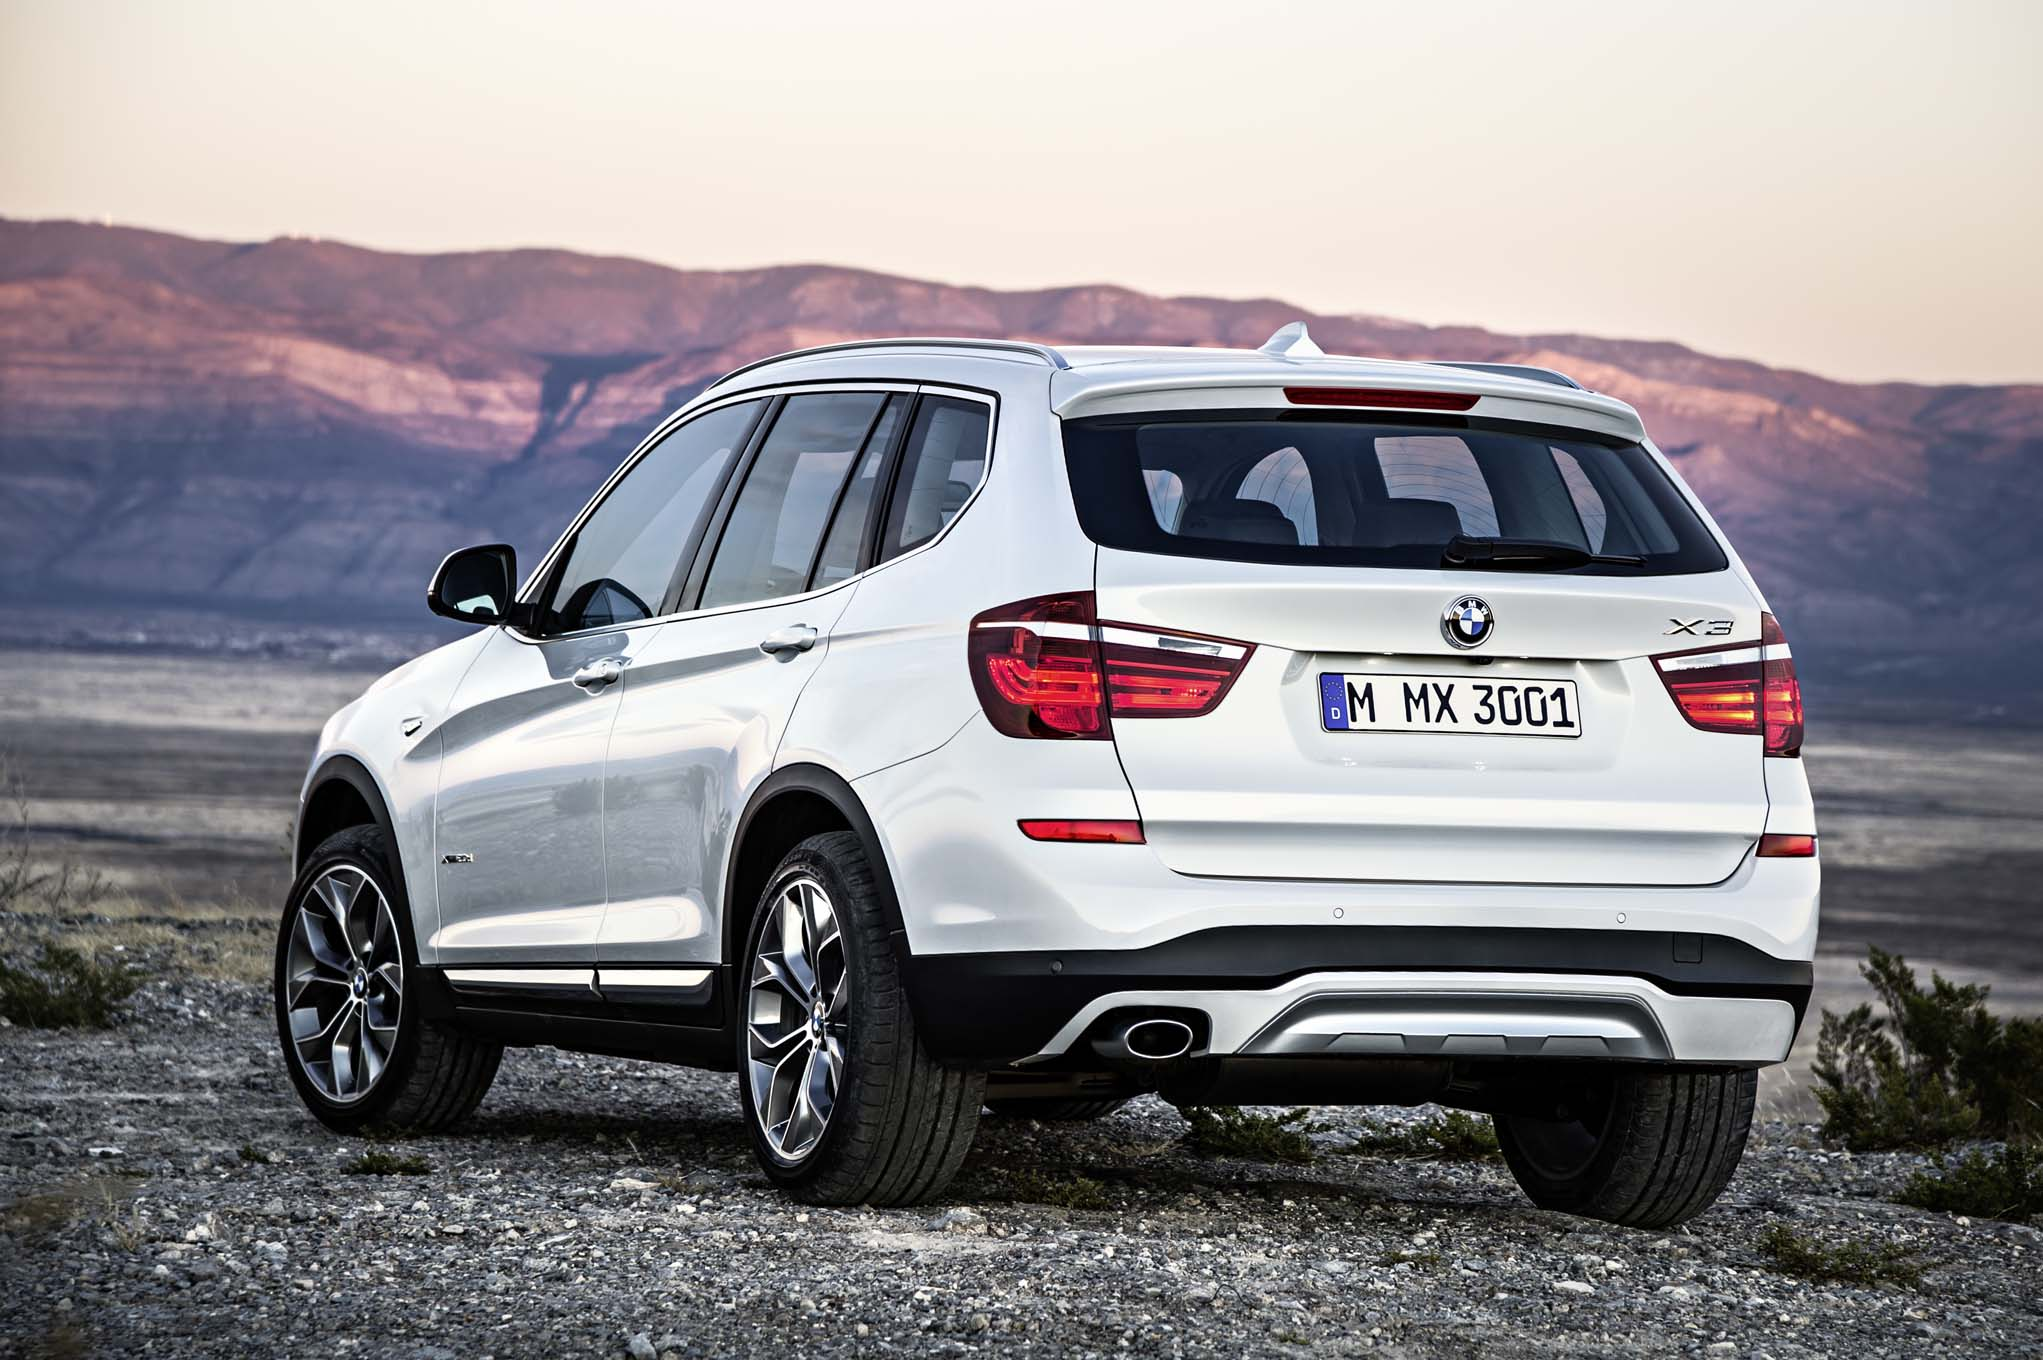 specifications en full xdrive the x tv guide bmw motoring technical price car engine